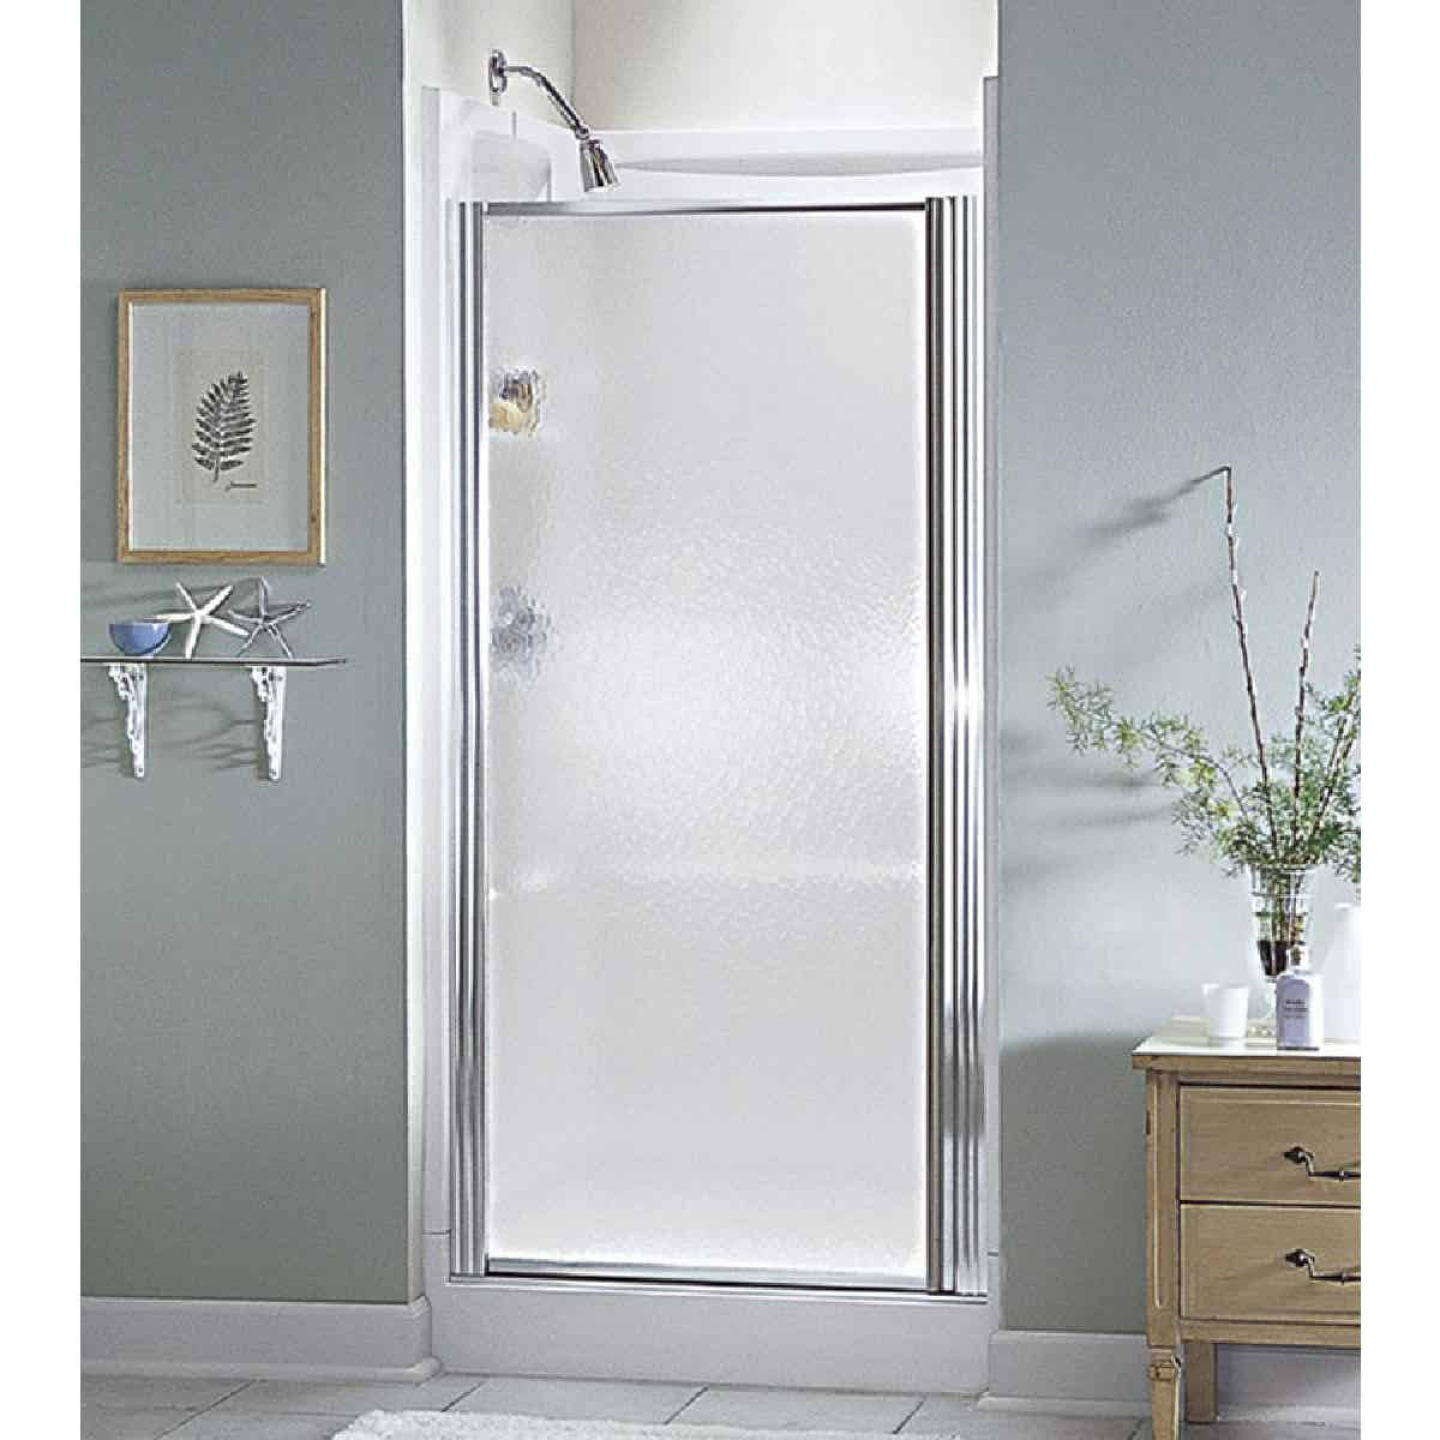 Sterling 30-1/2 In. W. X 64 In. H. Chrome Hammered Glass Standard Pivot Shower Door Image 1